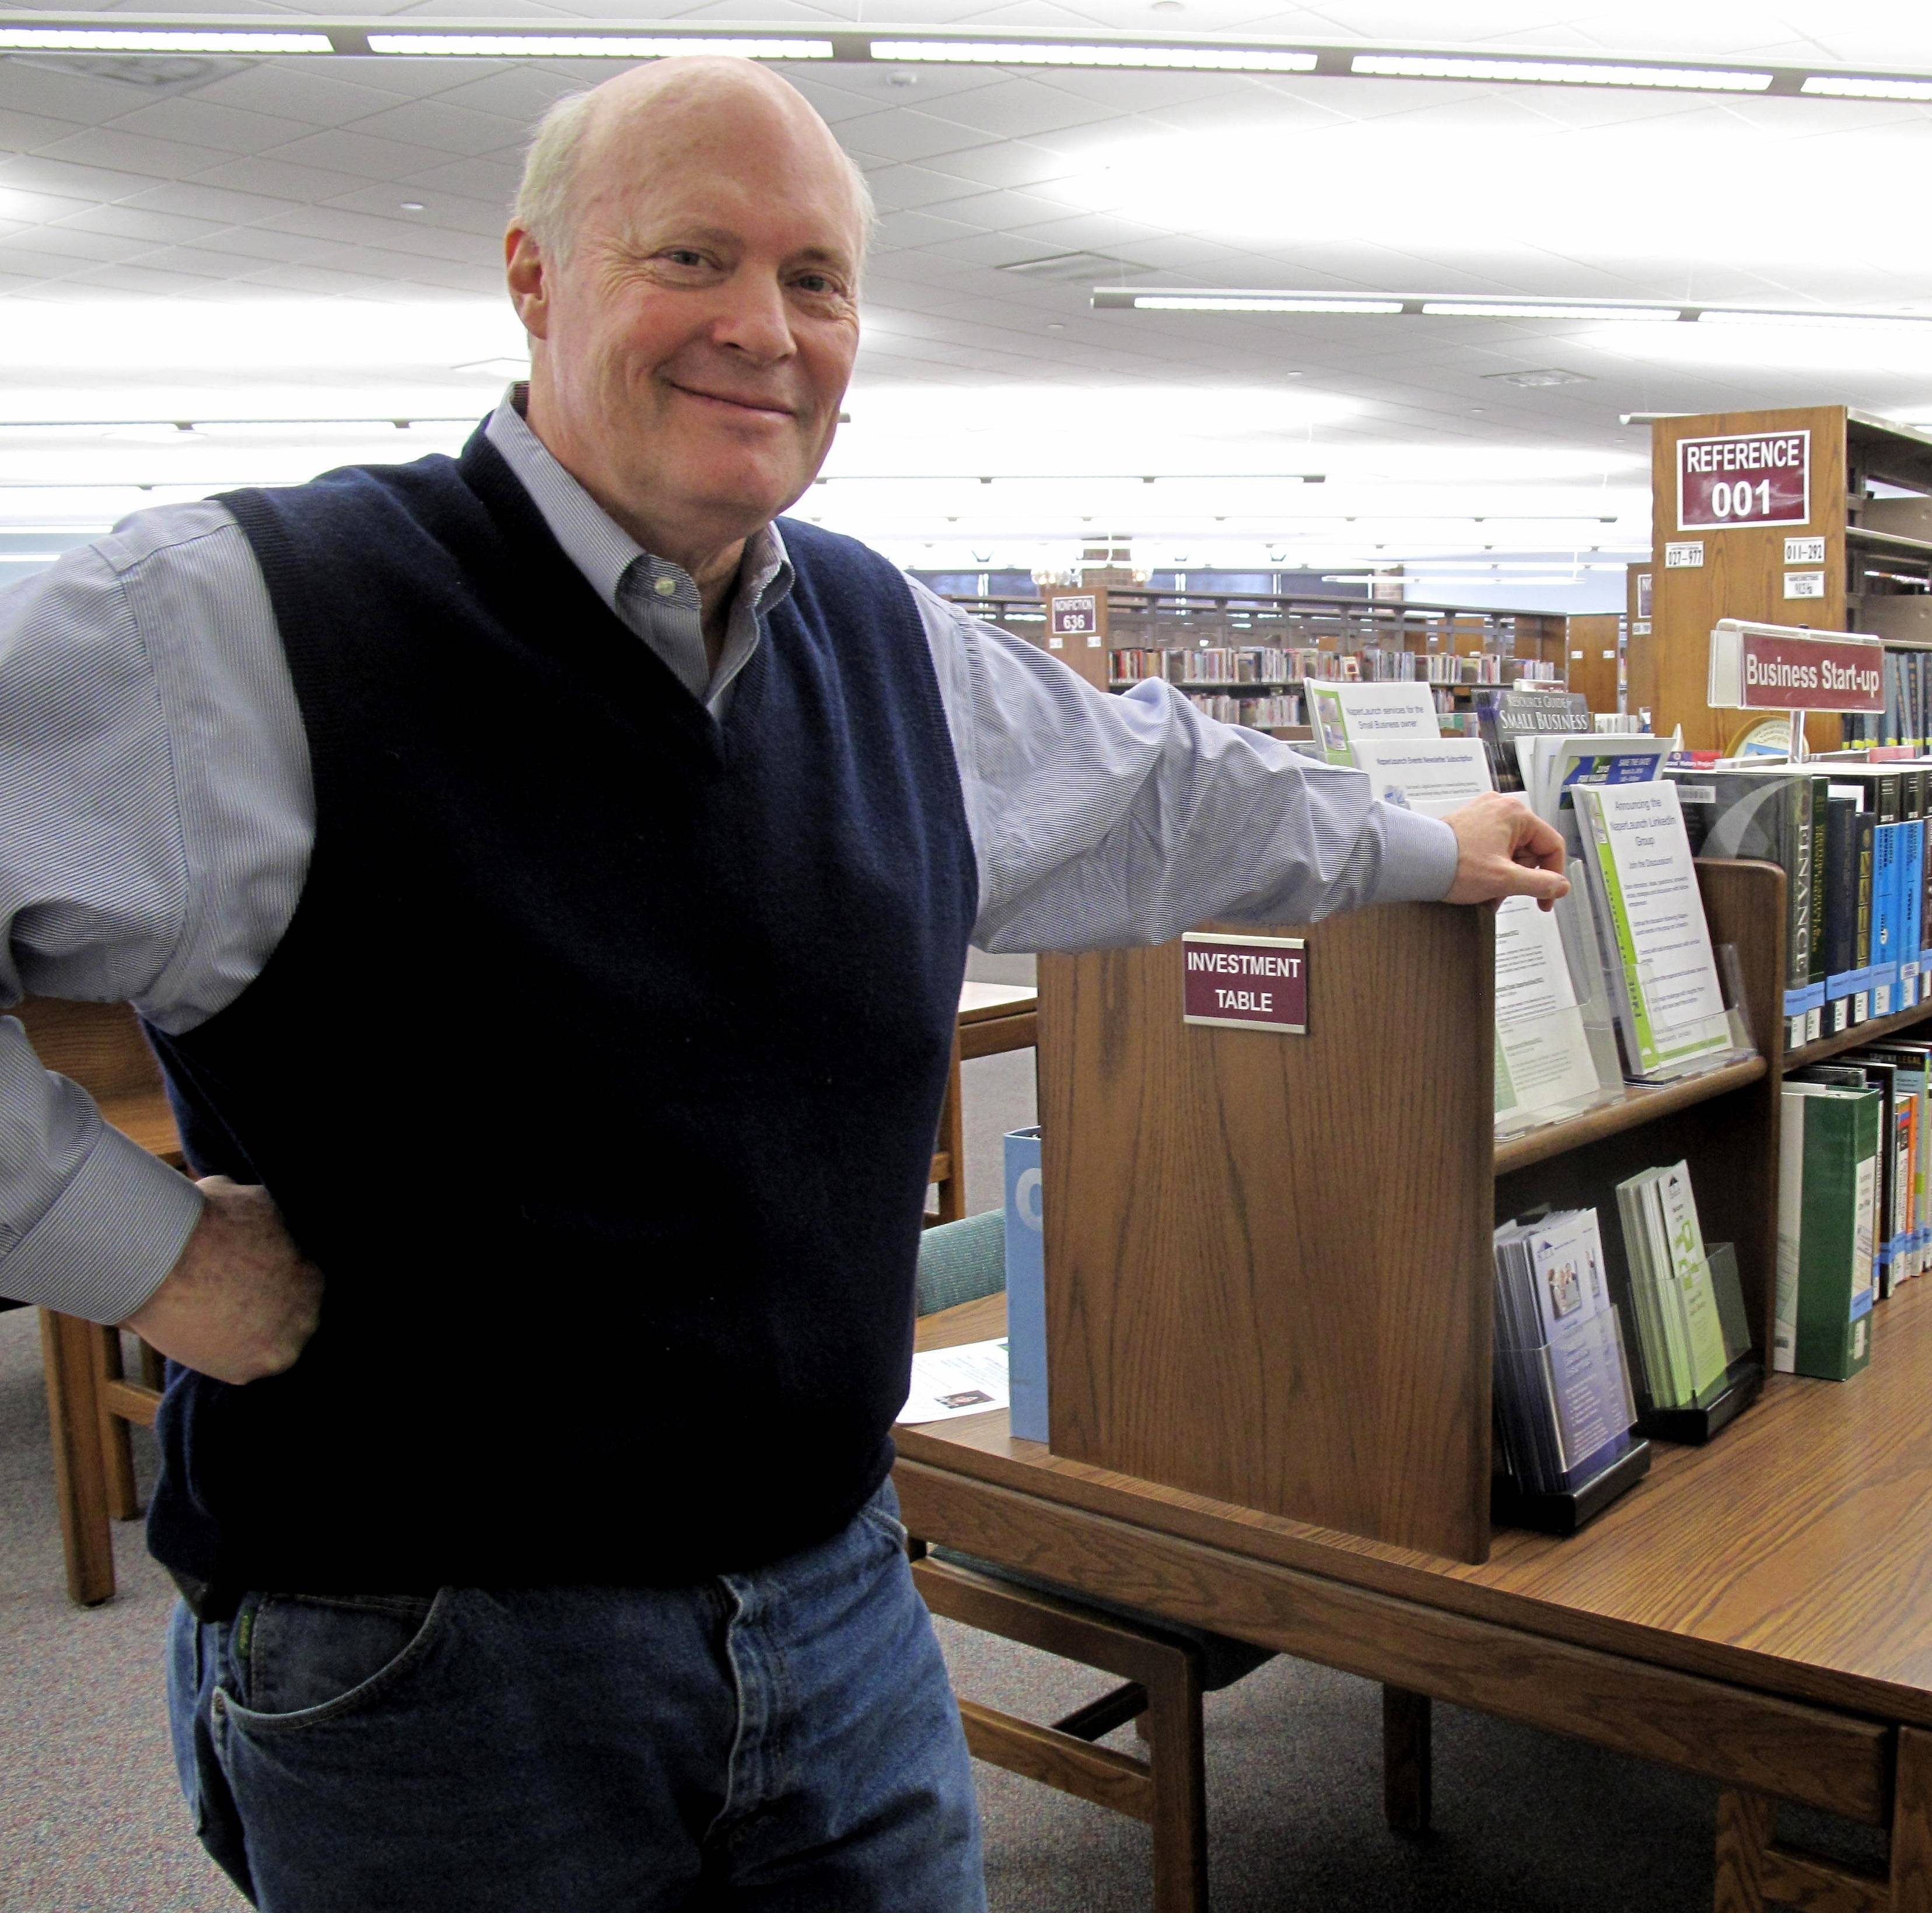 Mark Quigley, 59, of Naperville, is an entrepreneur whose new business growth is being helped along by NaperLaunch, the business startup center at the Naperville Public Library. Quigley has created a software program called Intercept that guides people through the process of creating a business plan.